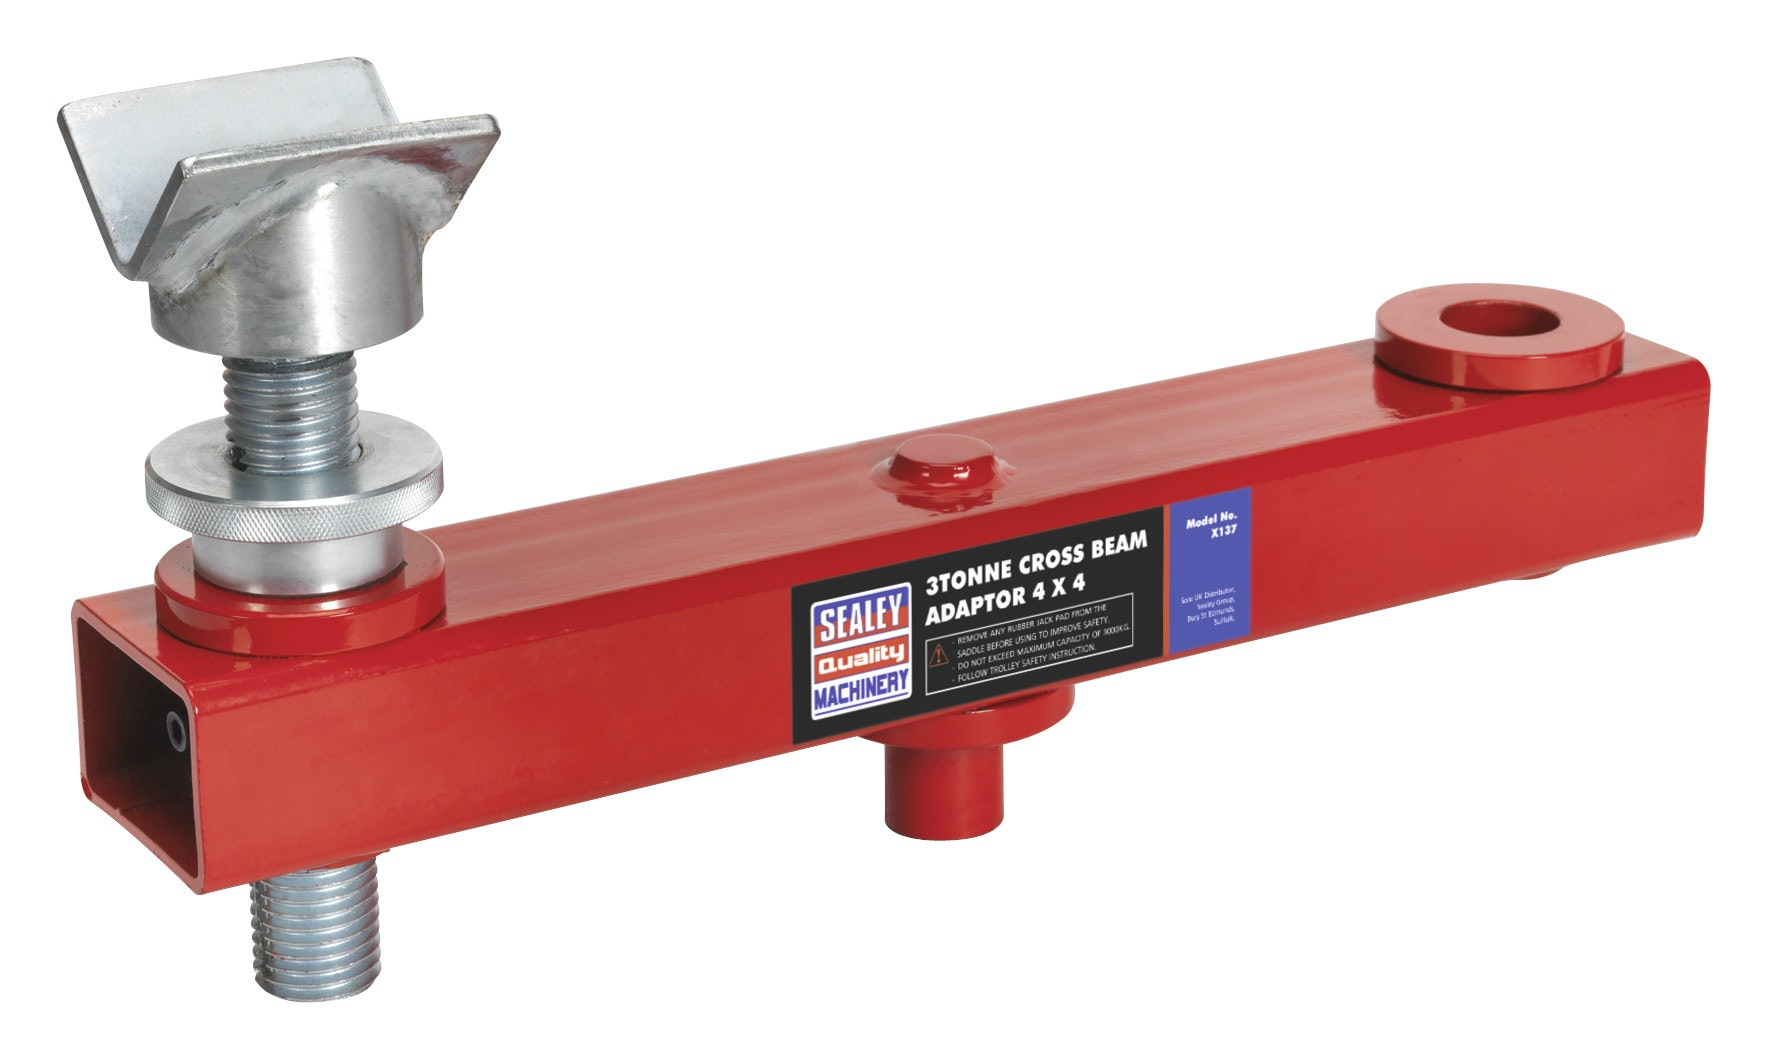 Sealey Cross beam Adapter sweepstakes